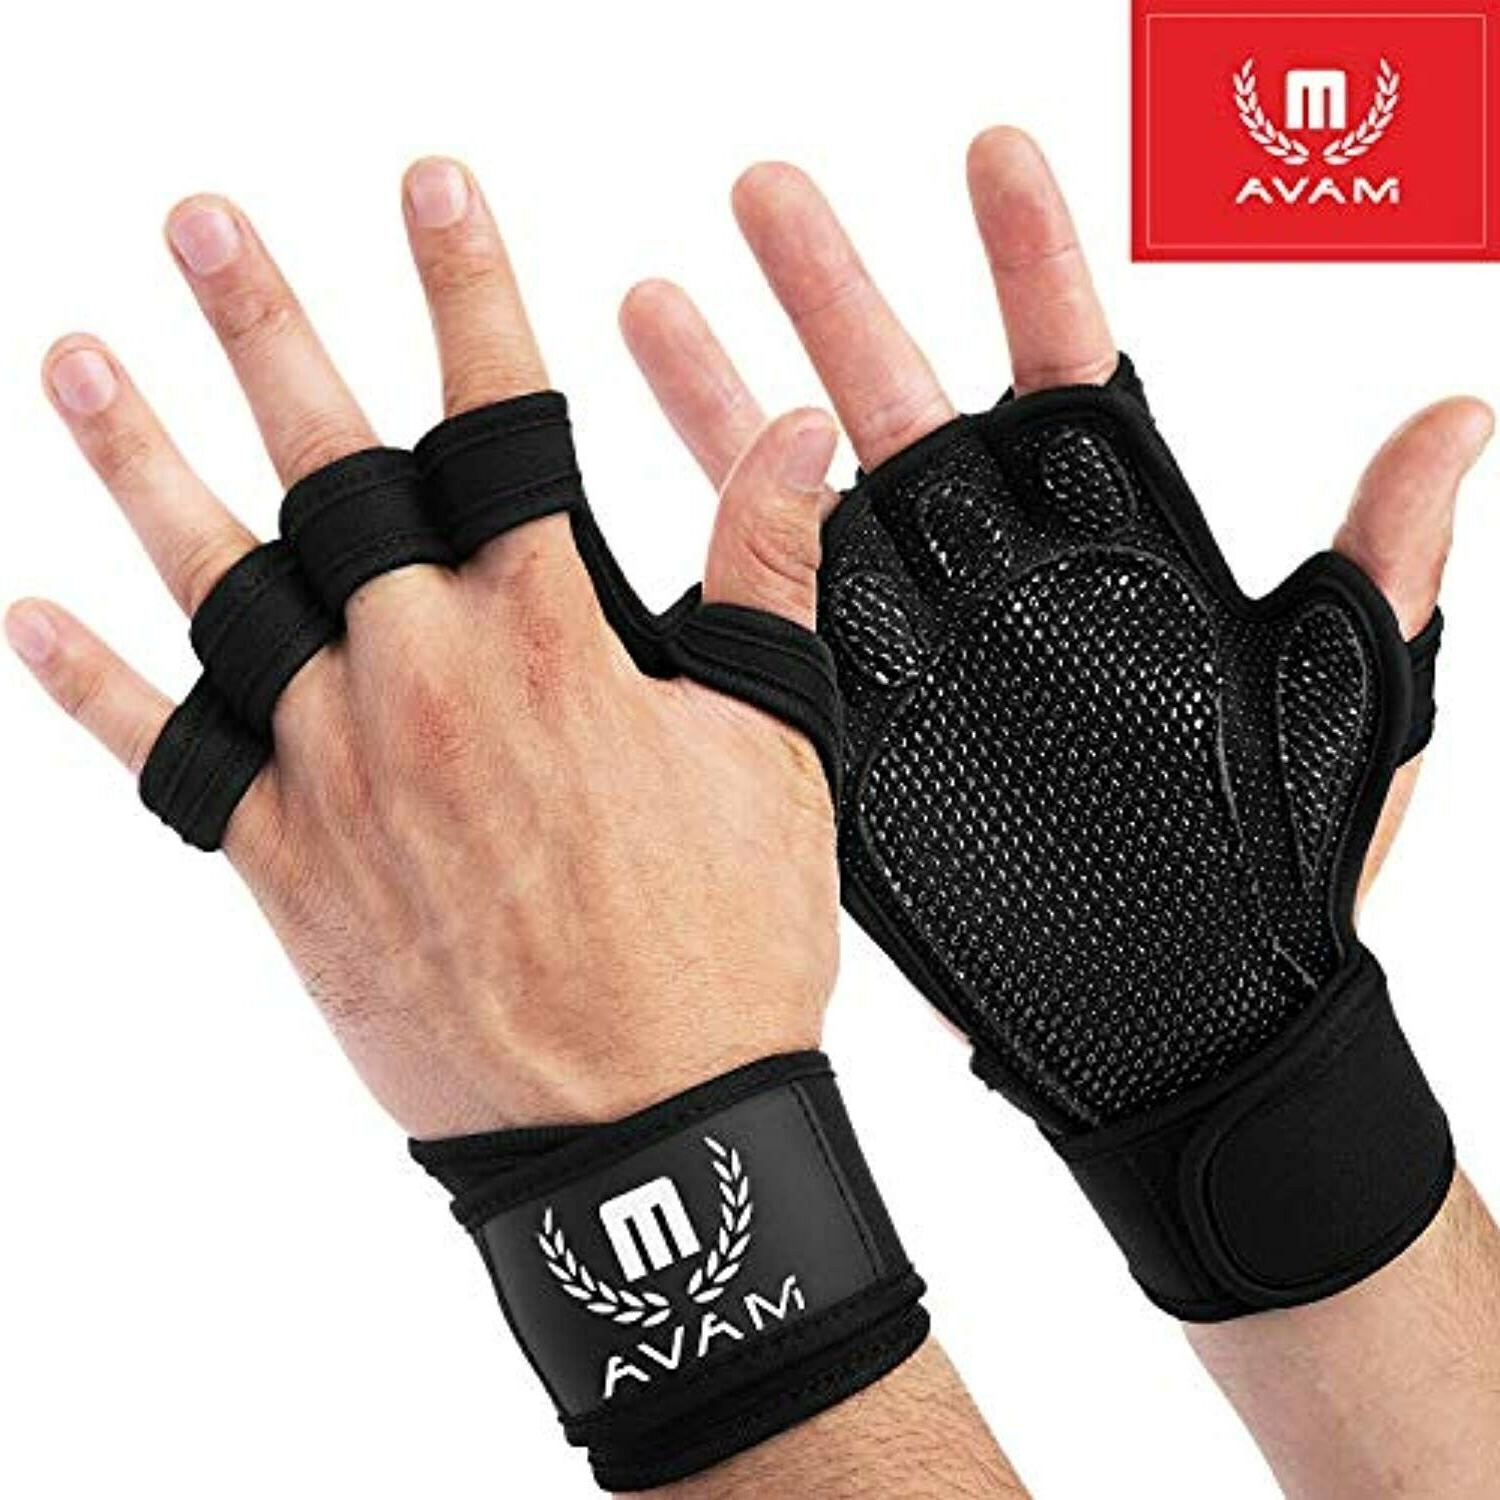 ventilated workout gloves with wrist wraps full